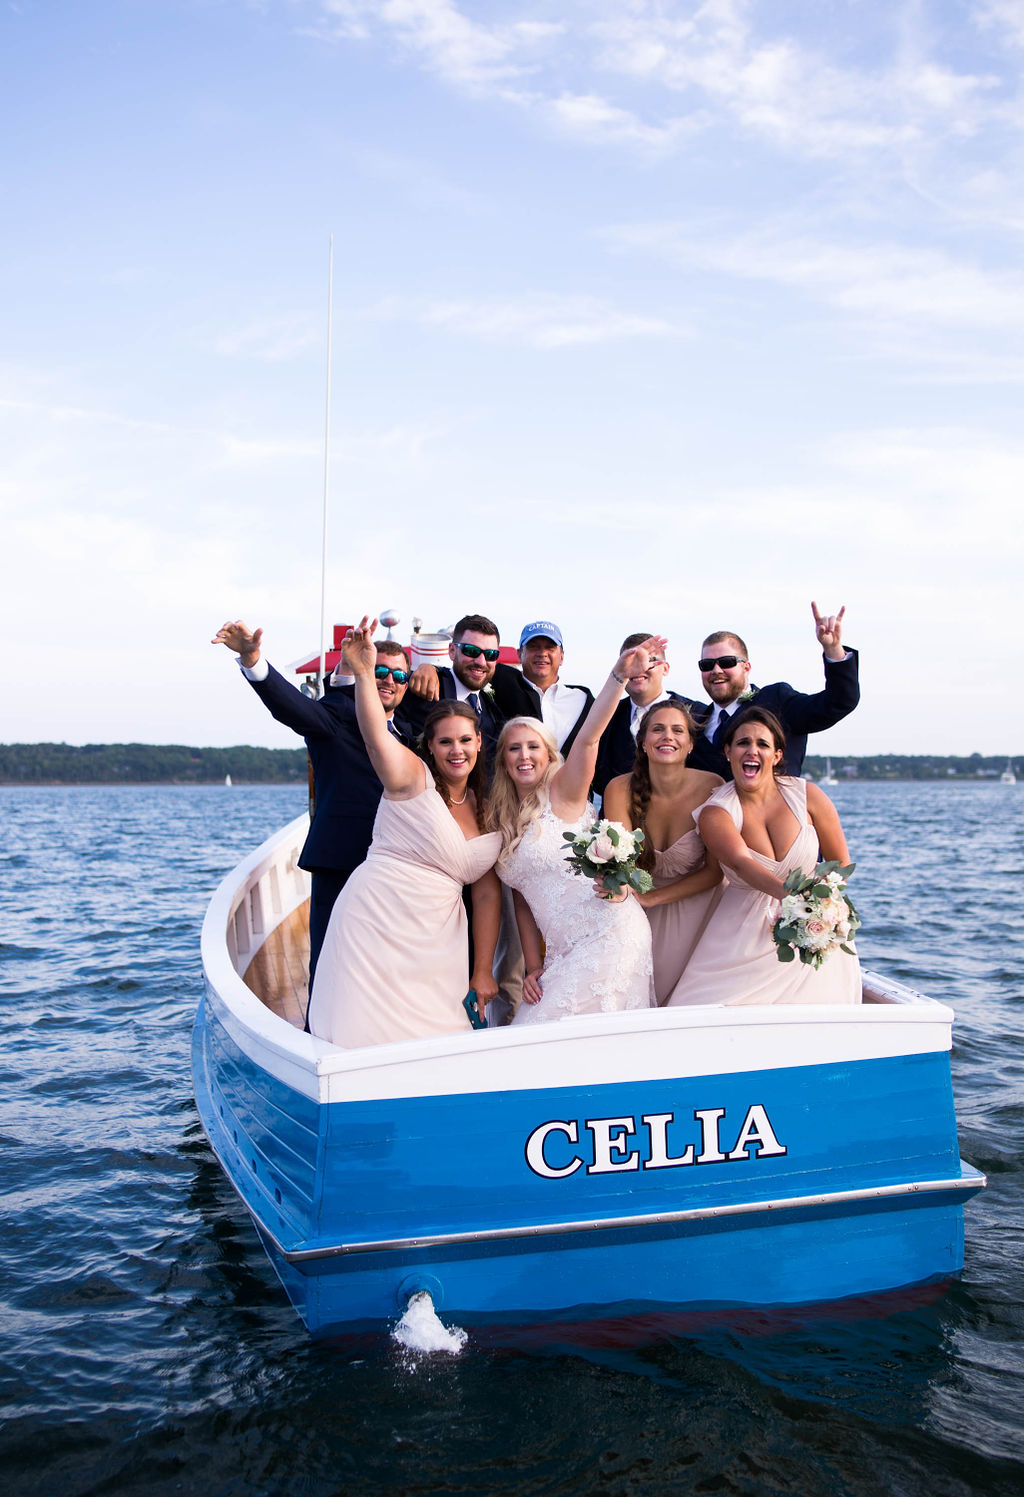 Wedding party on a boat in Maine